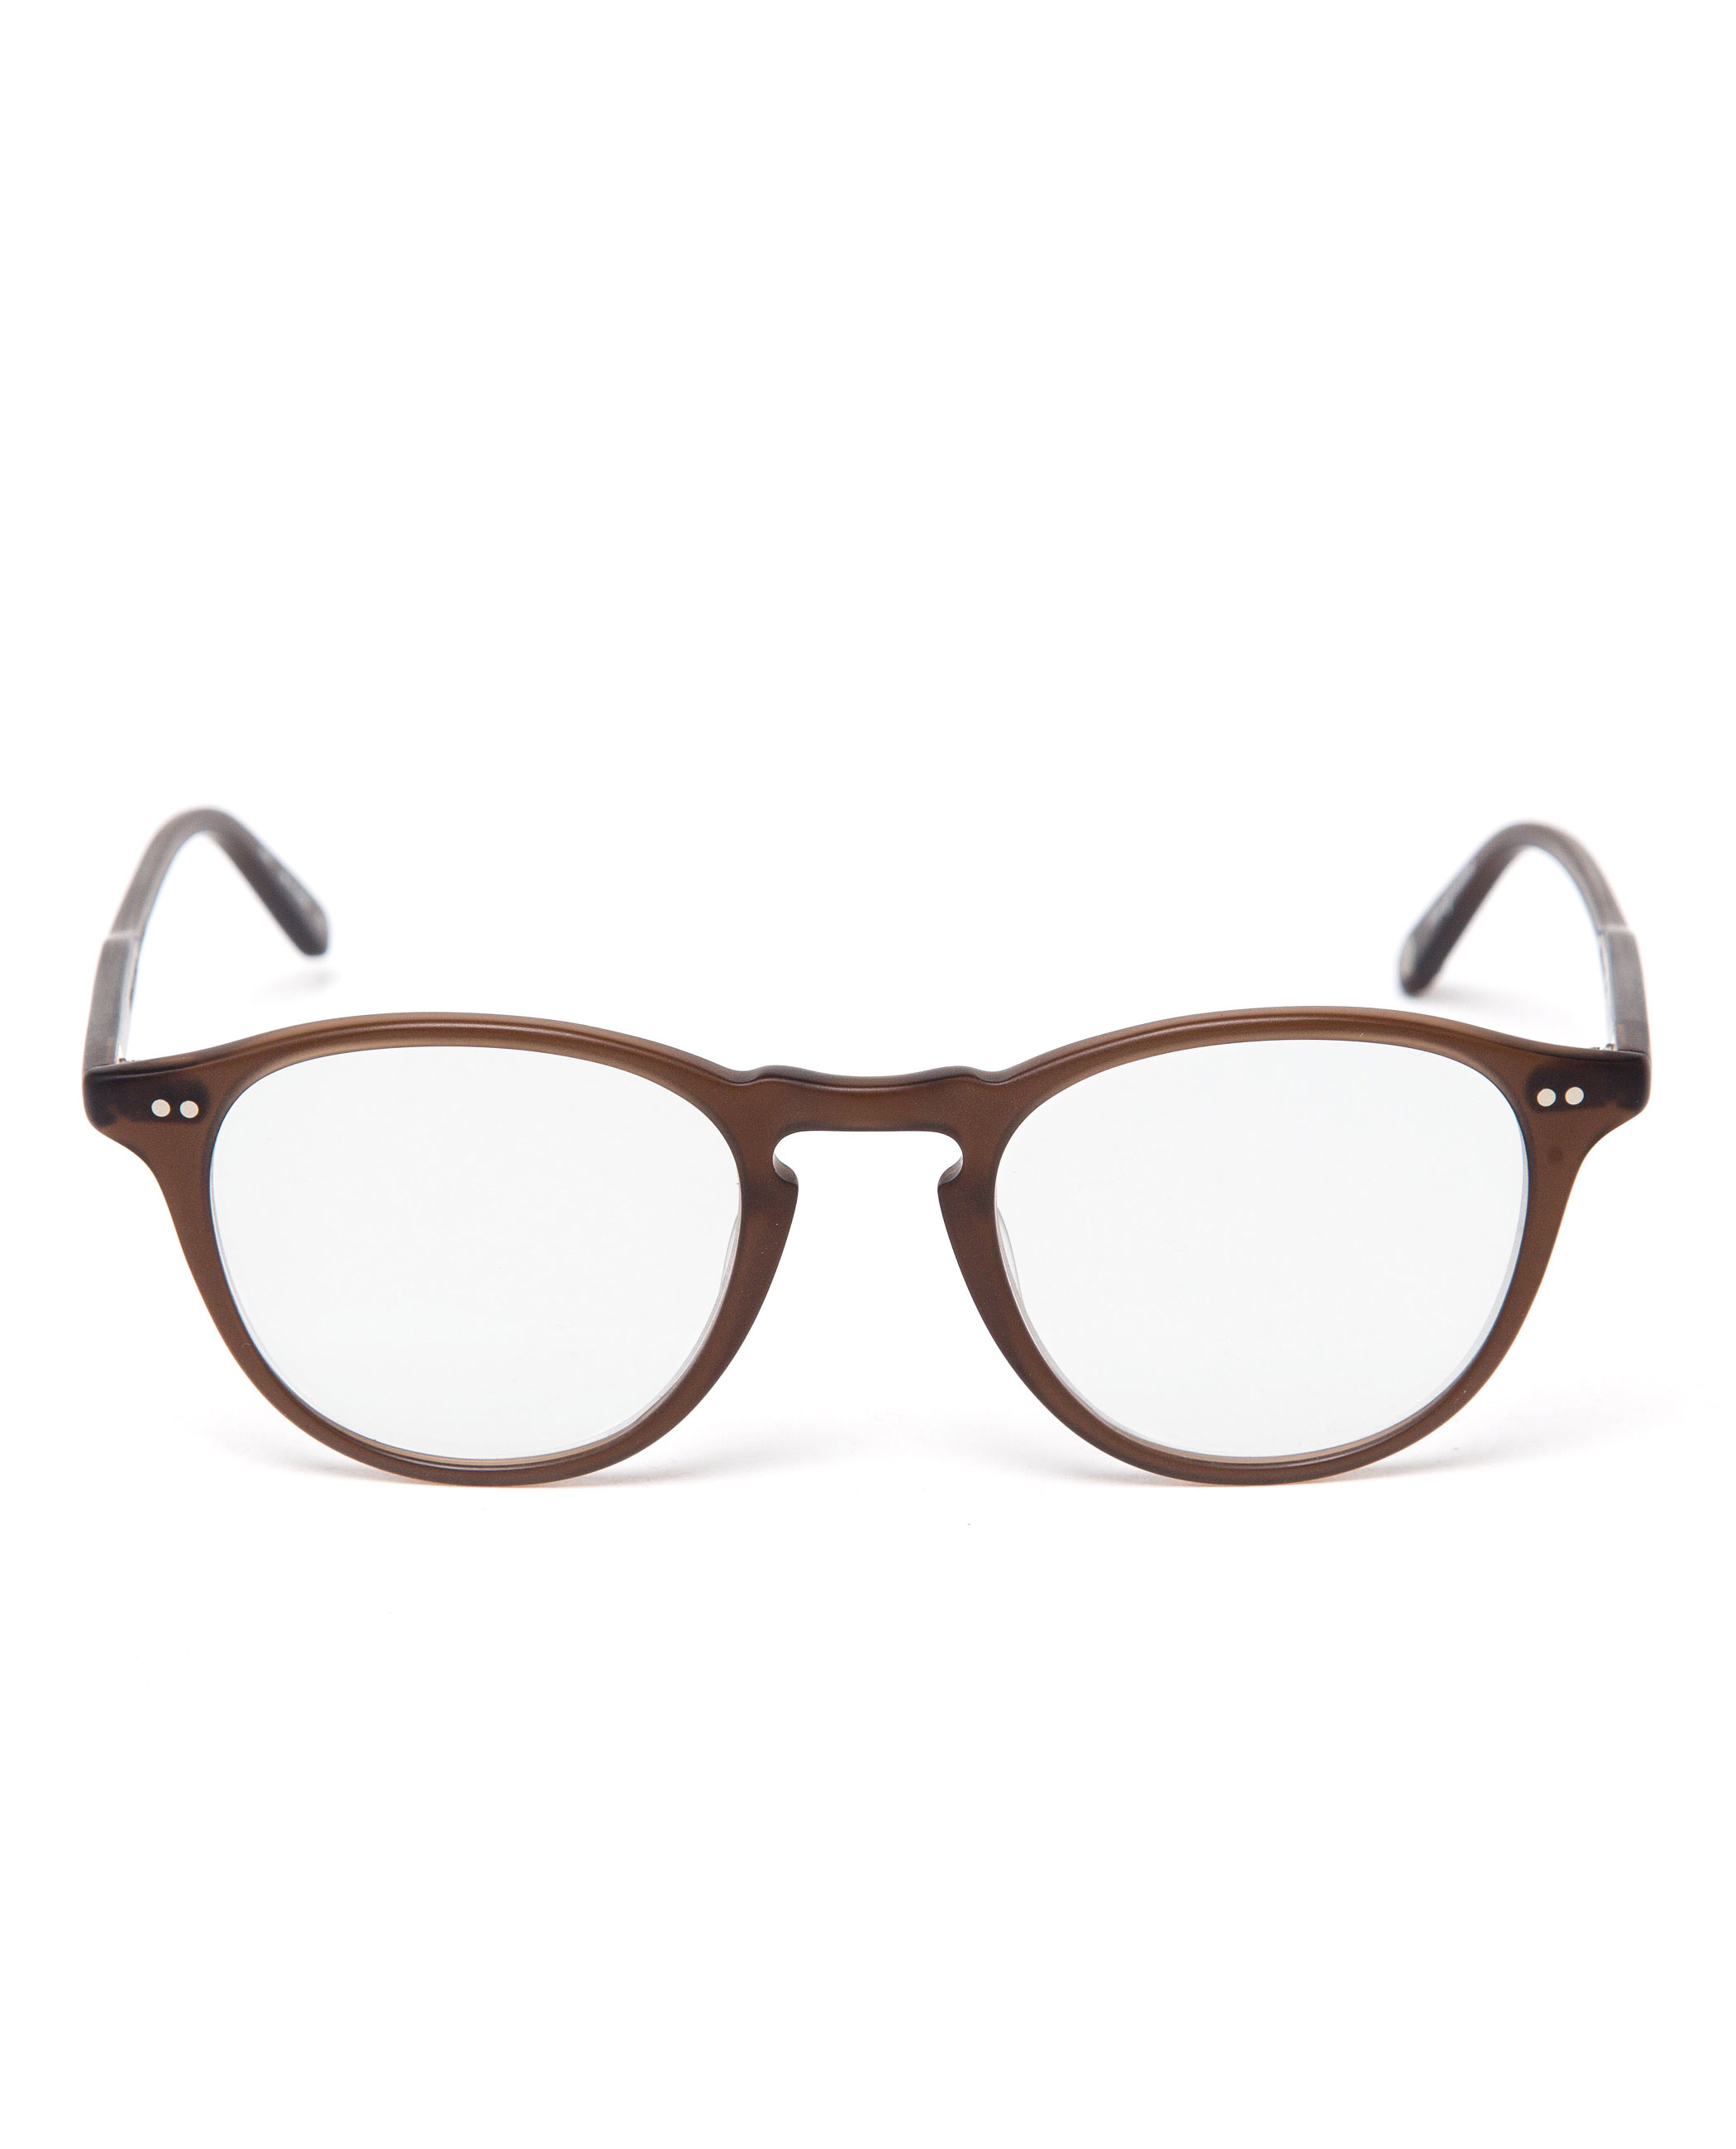 Garrett Leight Hampton Round Optical Glasses In Brown